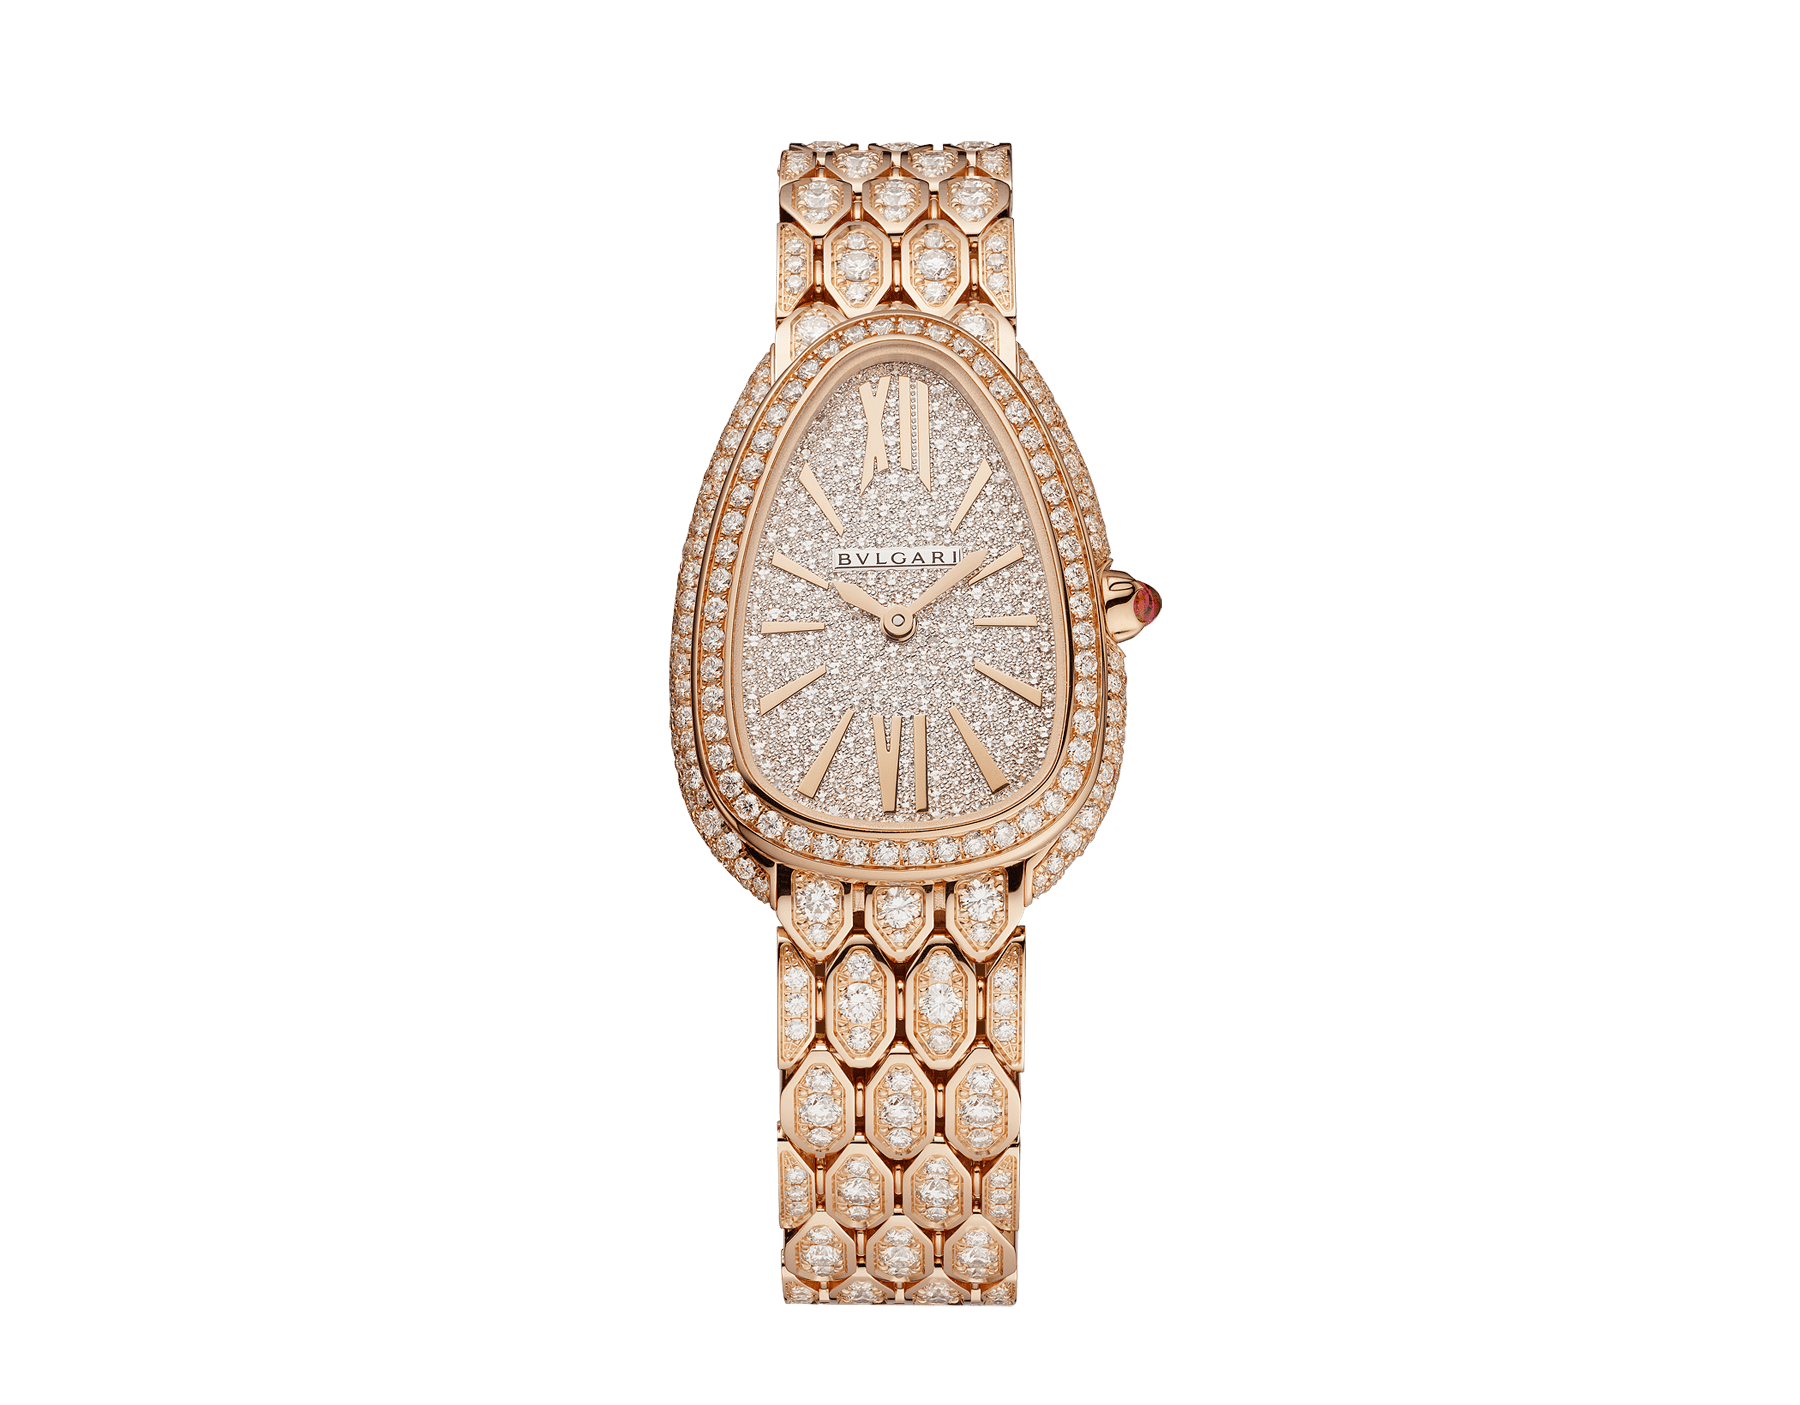 Serpenti Seduttori watch with 18 kt rose gold case and bracelet both set with diamonds, and full pavé dial 103160 image 1